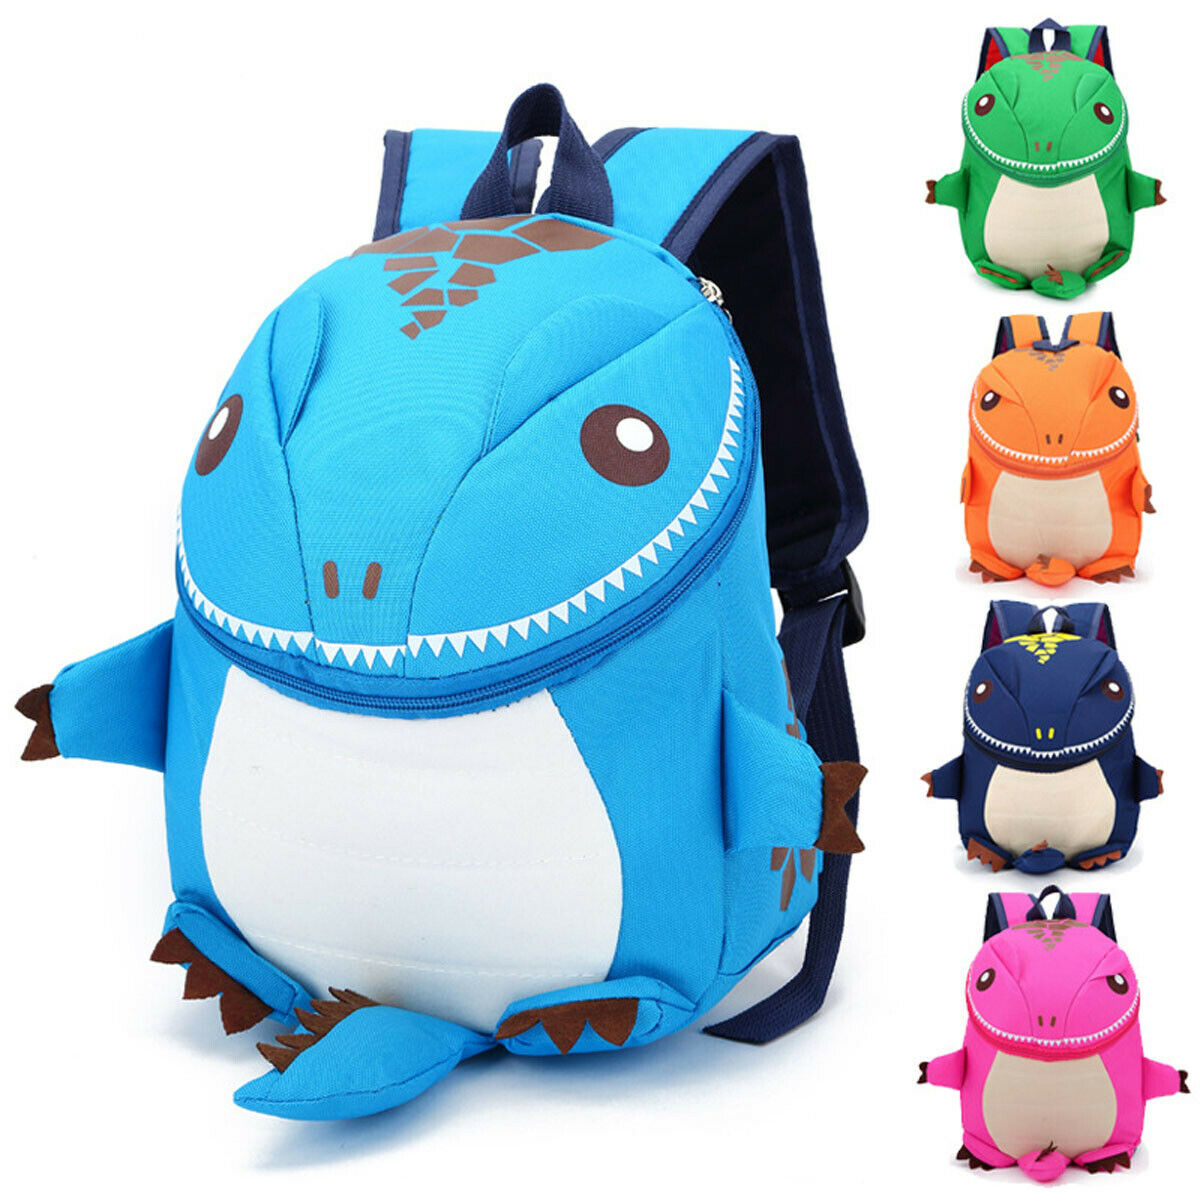 3D Dinosaur Baby Bag For Boys Girls Waterproof Children Backpacks Kids Small Bag Girl Cute Animal Prints Travel Bags Toys Gifts|Backpacks|   - AliExpress